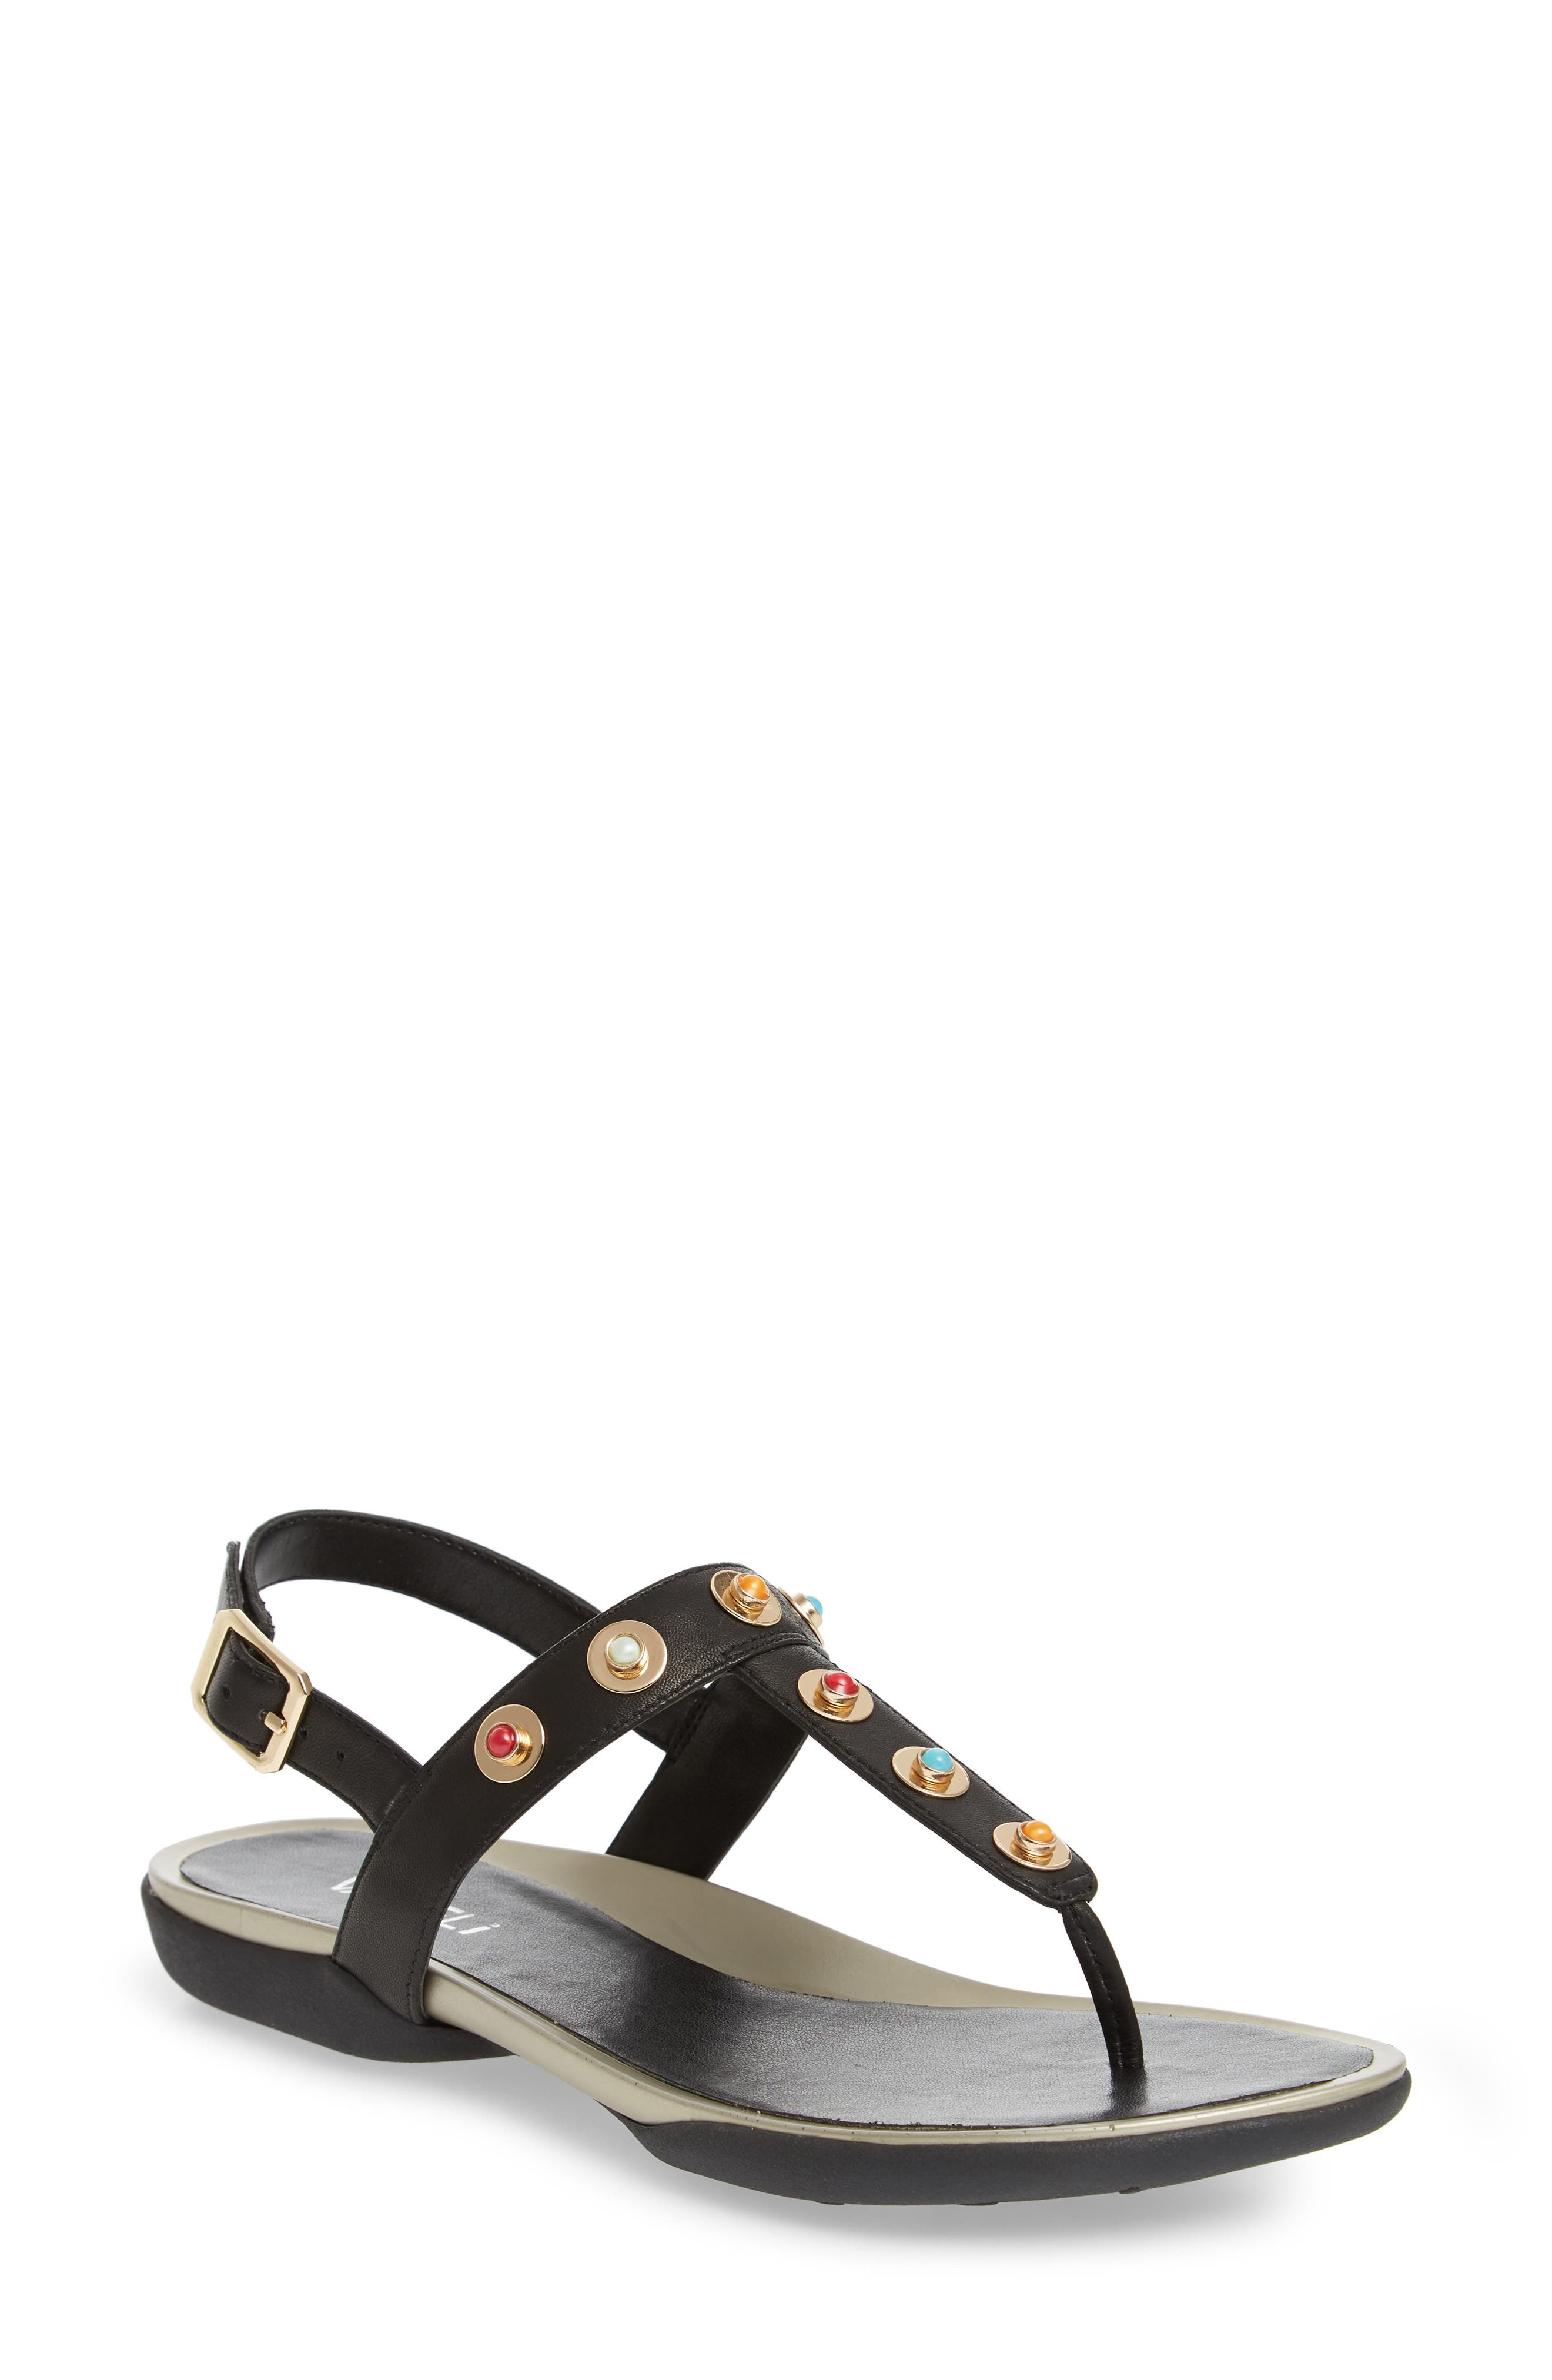 Wally Studded T-Strap Sandal,                             Main thumbnail 1, color,                             BLACK LEATHER